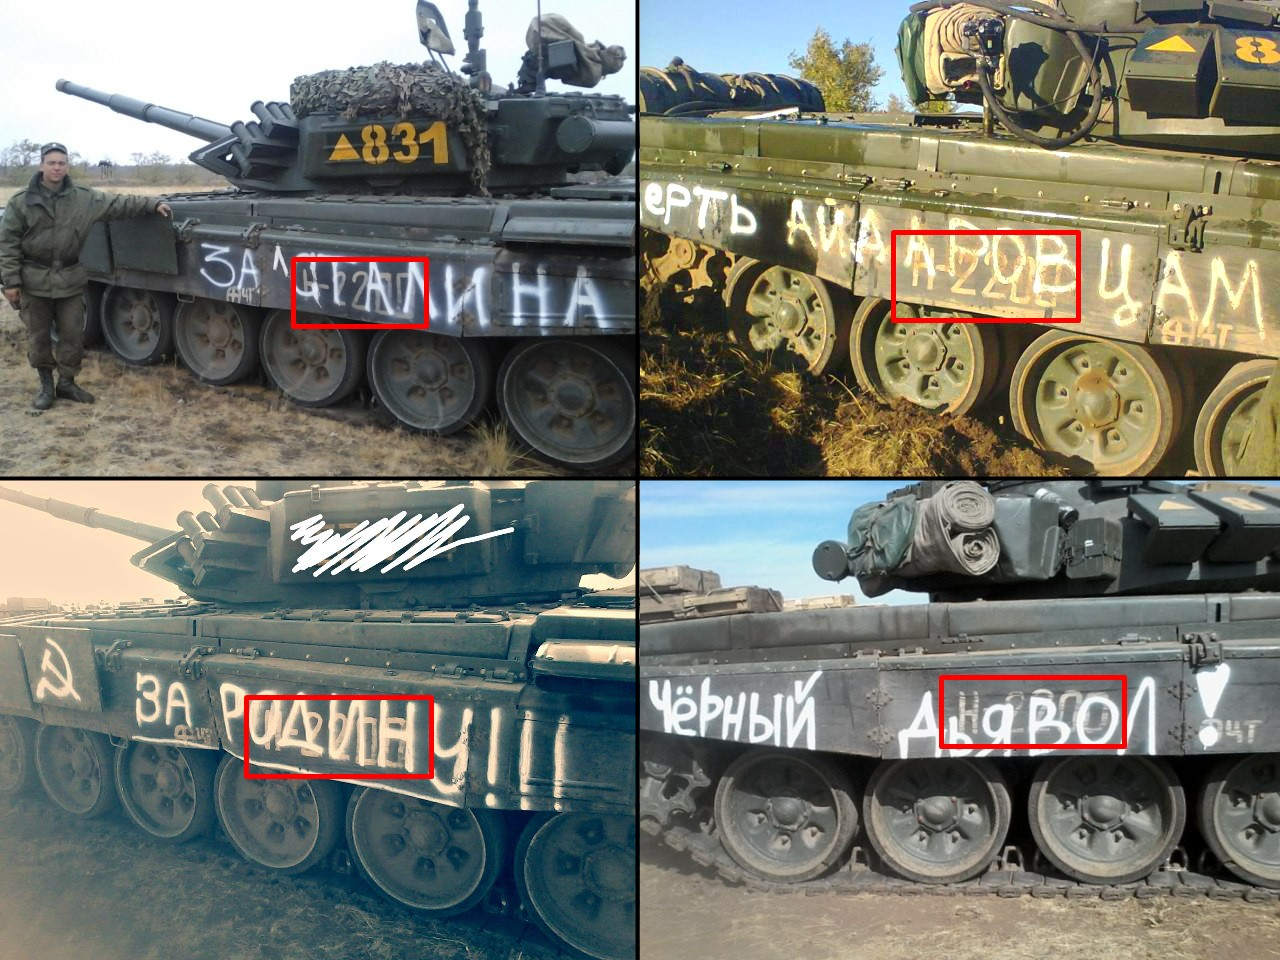 Four photographs of tanks from Russia's 200th Motorized Infantry Brigade with the H2200 oversized cargo railway code on the side.